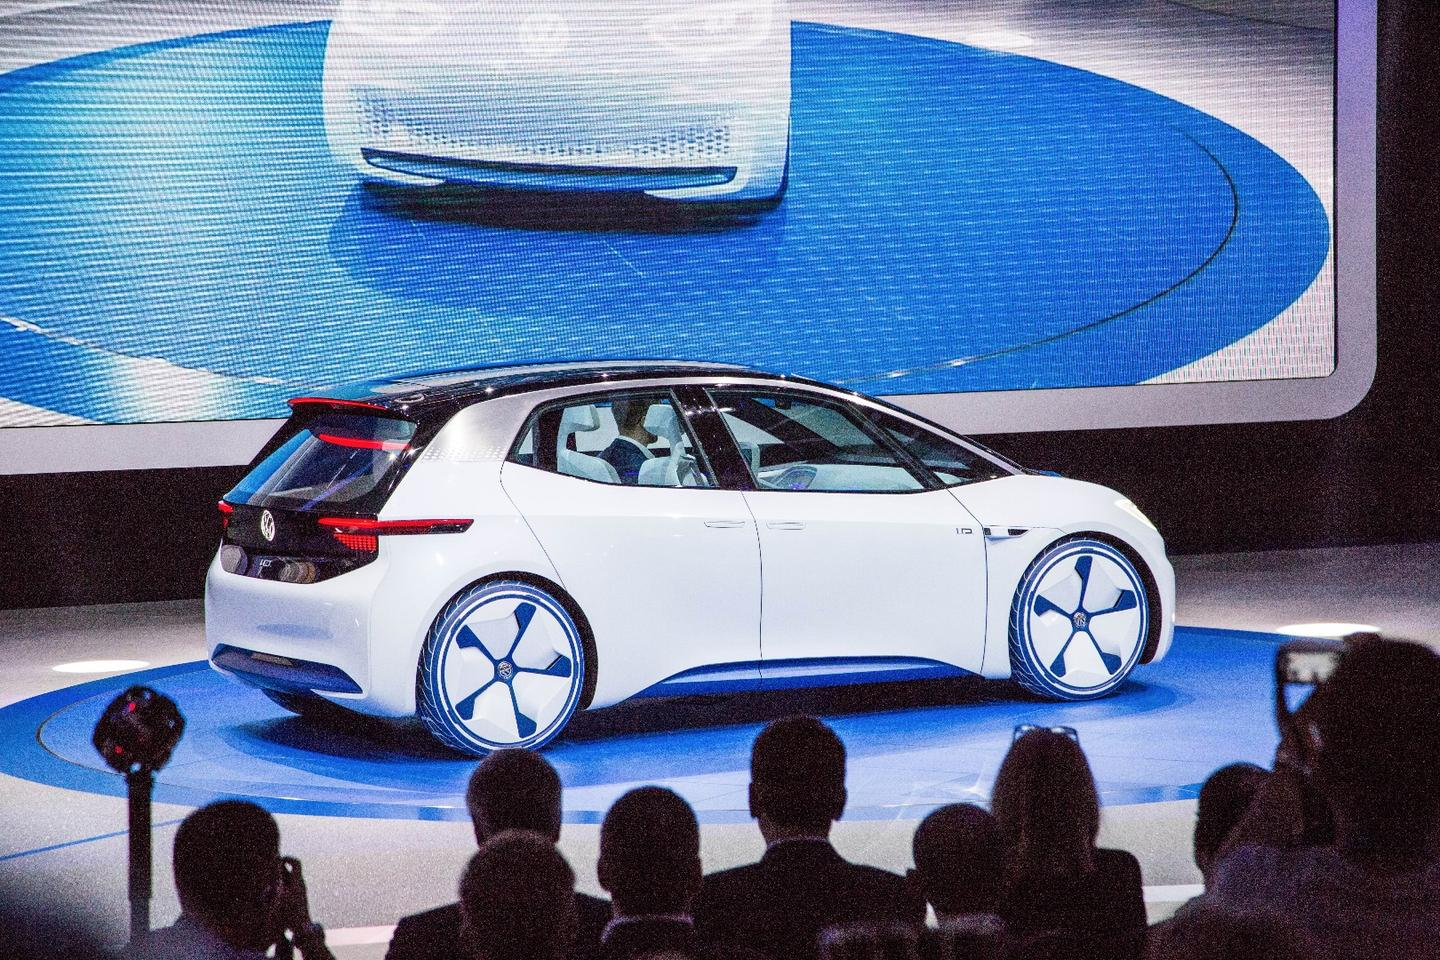 The Volkswagen IDpoints toVW's electric future